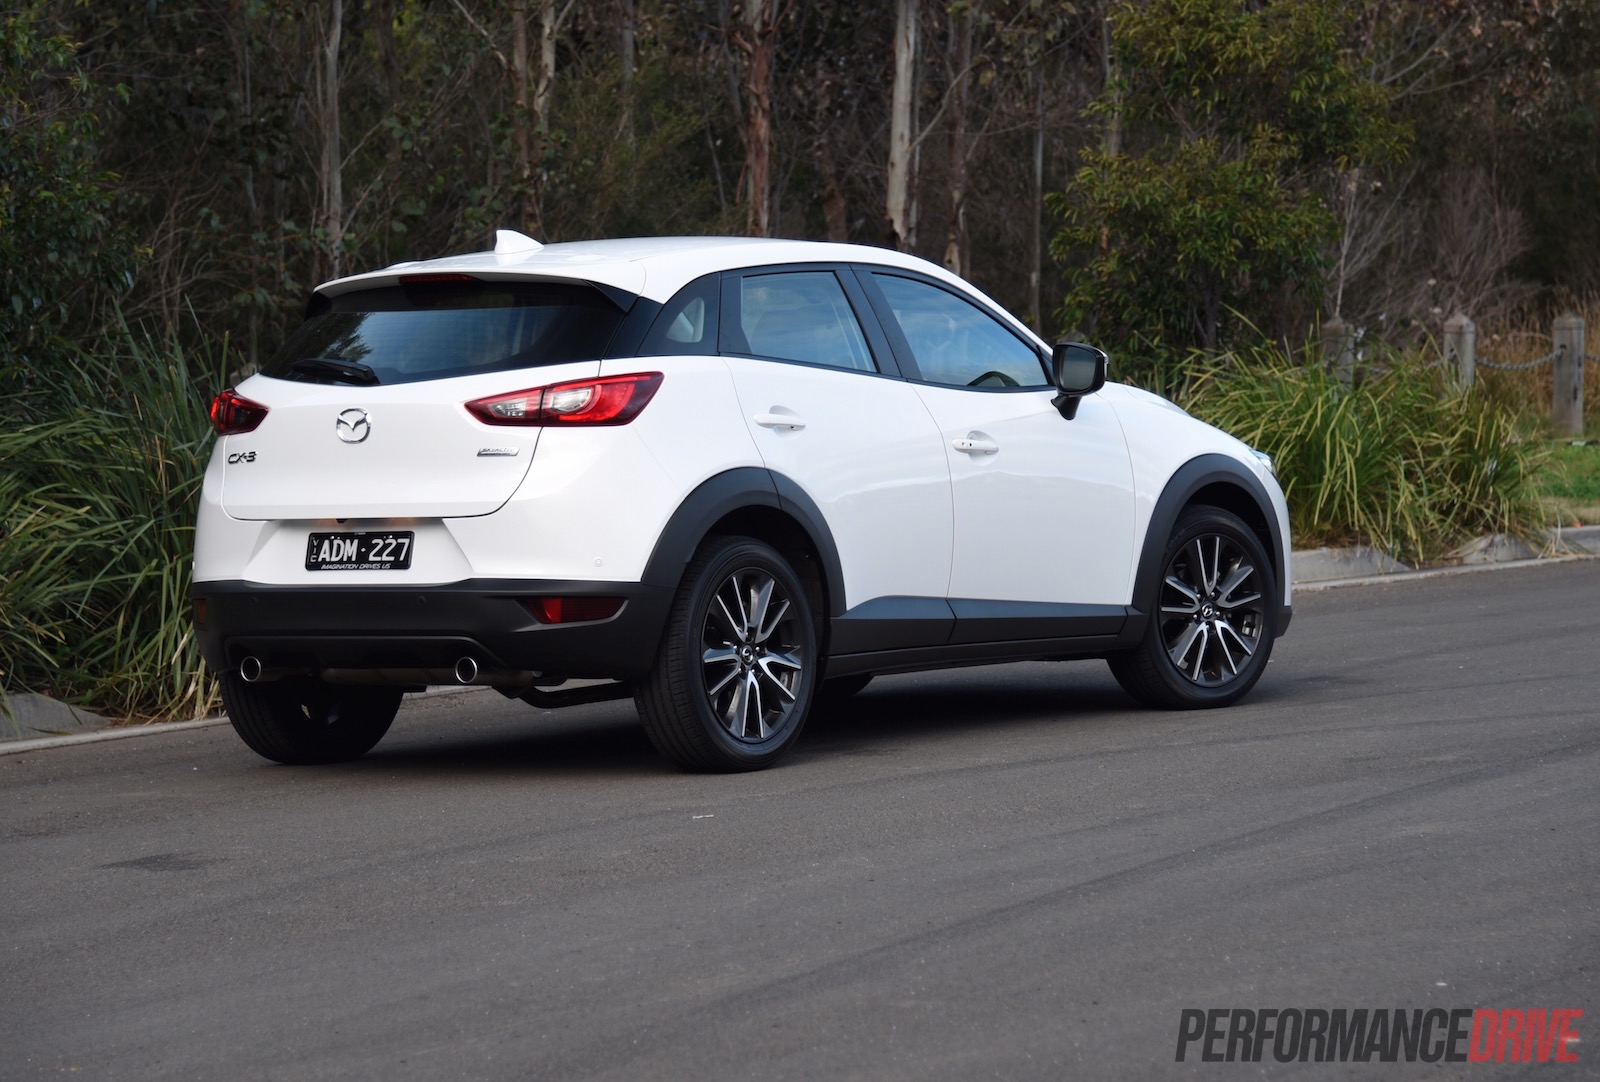 2015 mazda cx 3 stouring petrol review video performancedrive. Black Bedroom Furniture Sets. Home Design Ideas